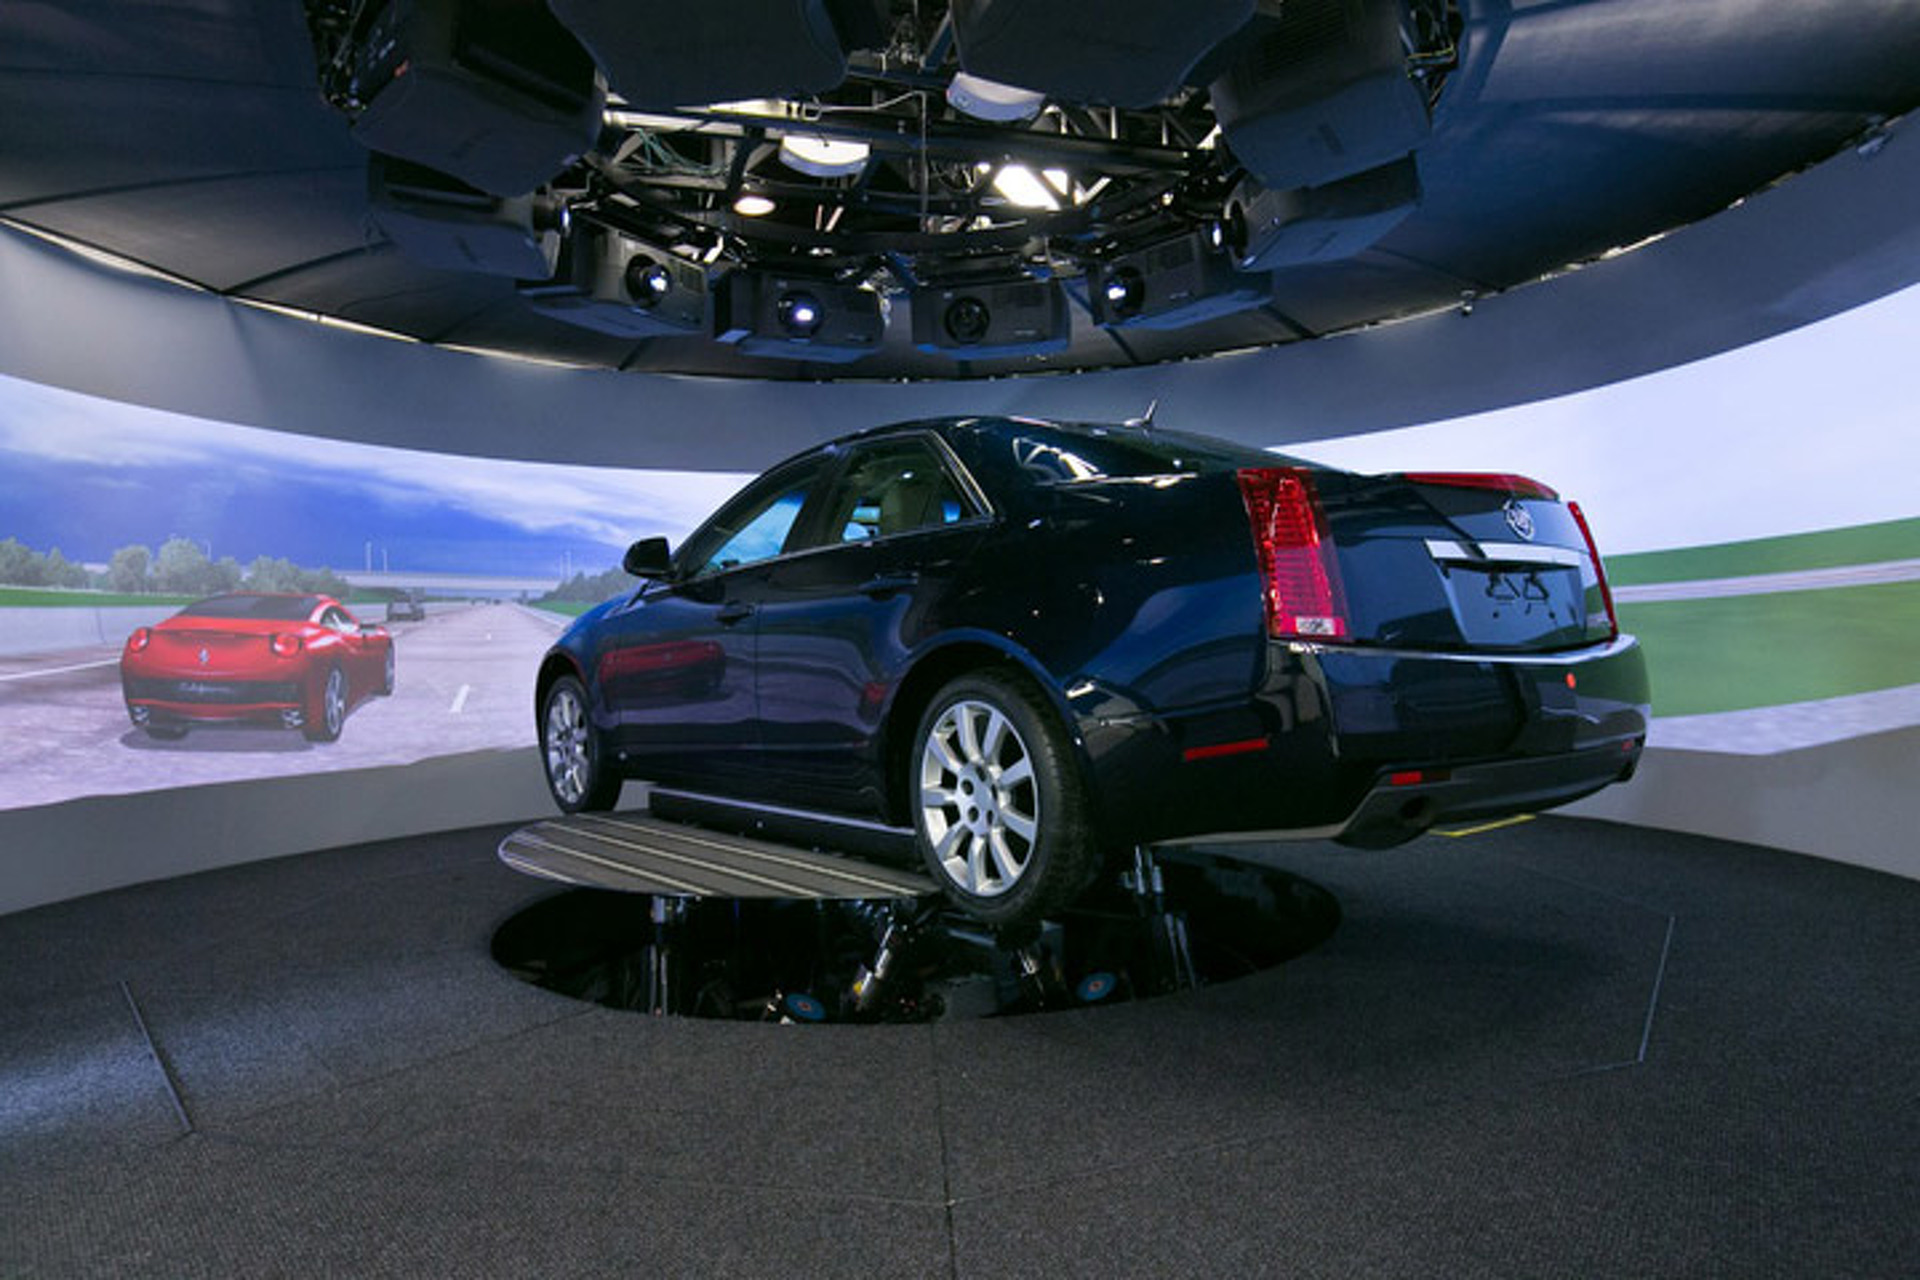 Cadillac: New Flagship and Hands-Free by 2017